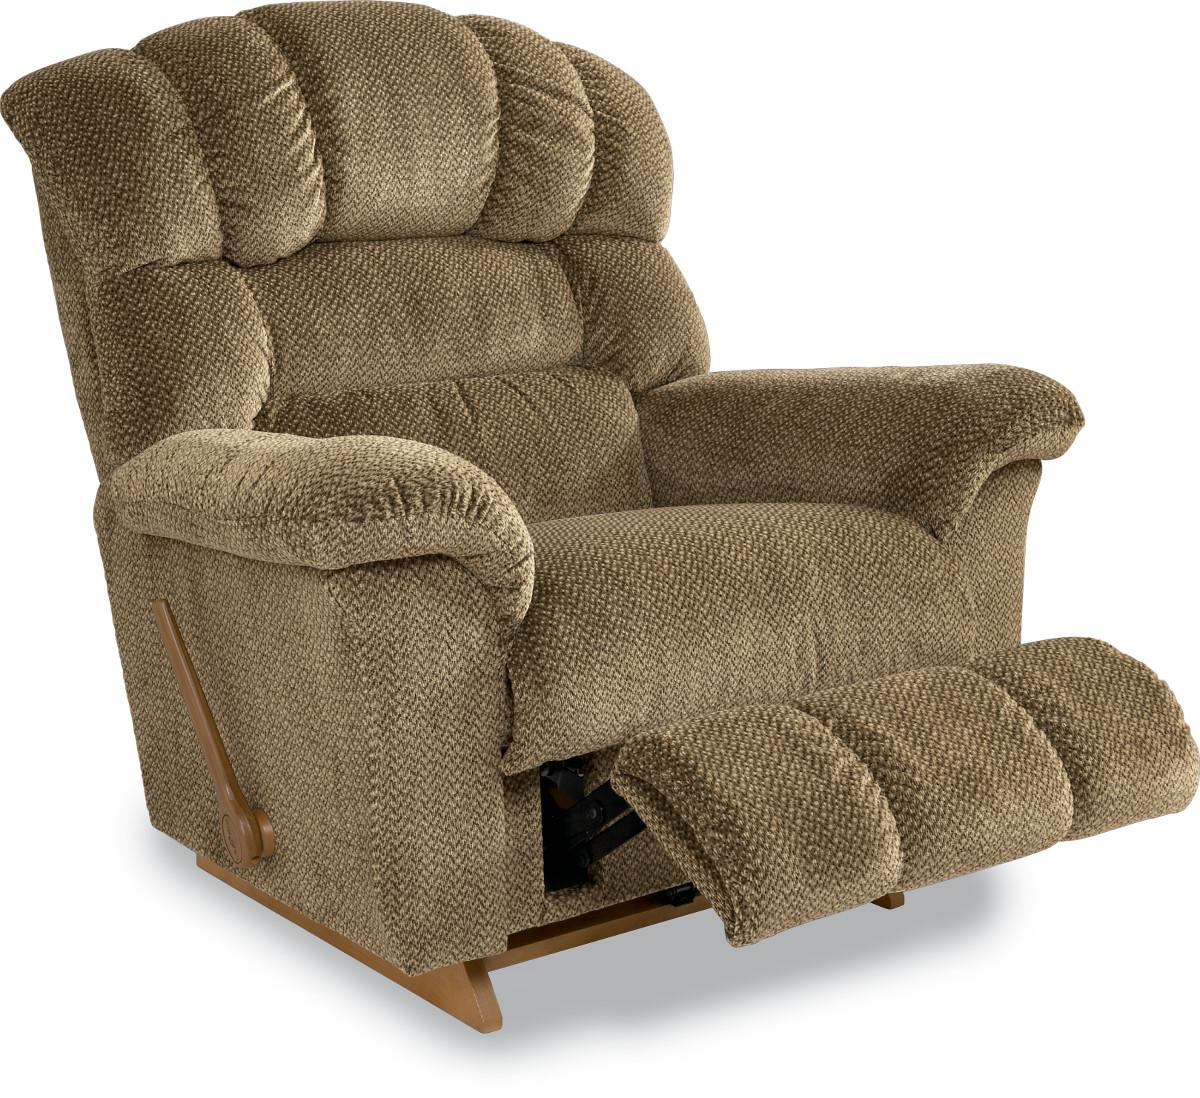 Recliner Rocking Chair Crandell Reclina Rocker Reclining Chair By La Z Boy